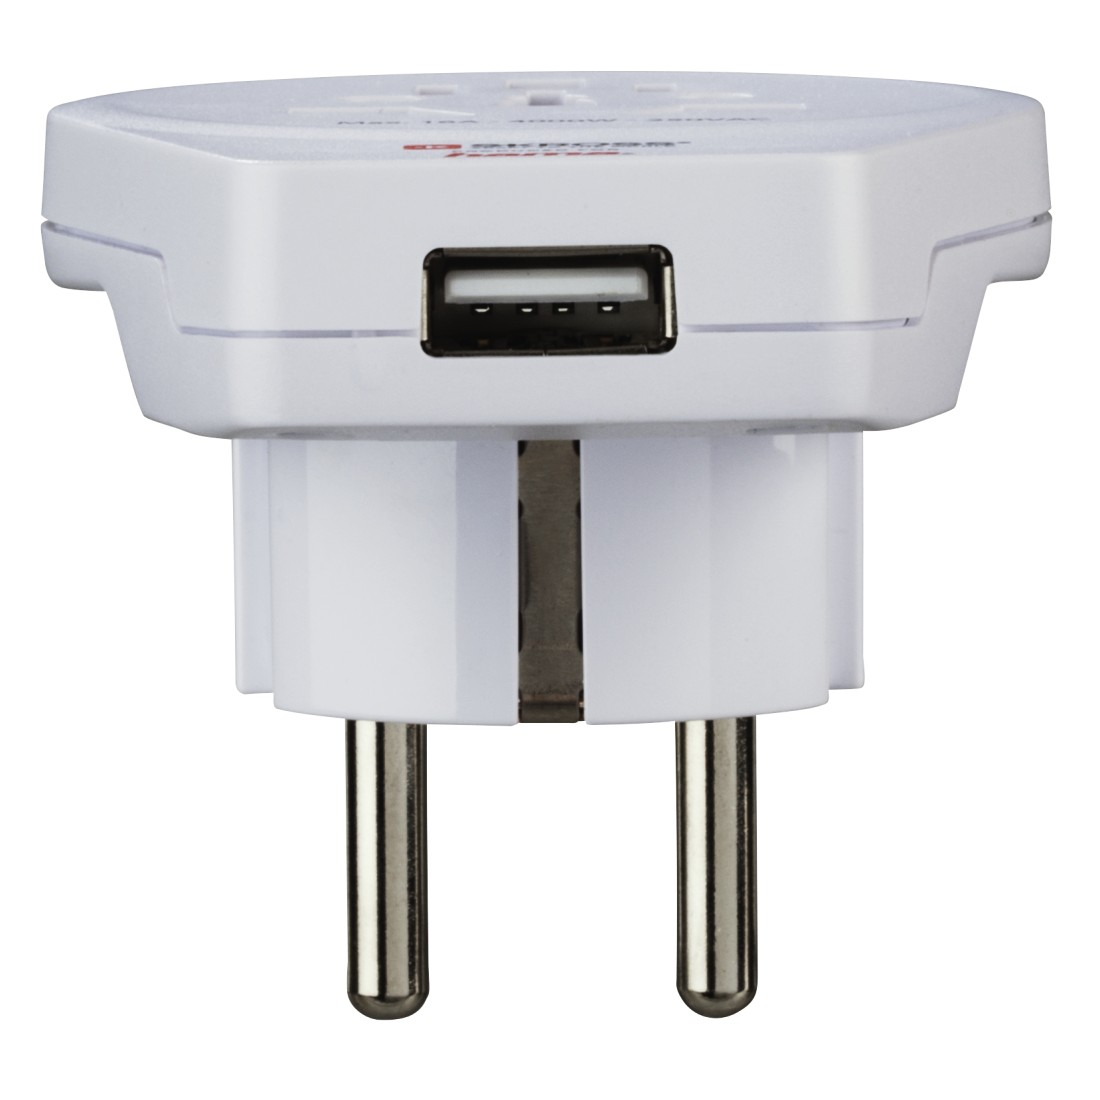 "dex3 High-Res Detail 3 - Hama, ""World to Europe USB"" Travel Adapter Plug, 3 pins"